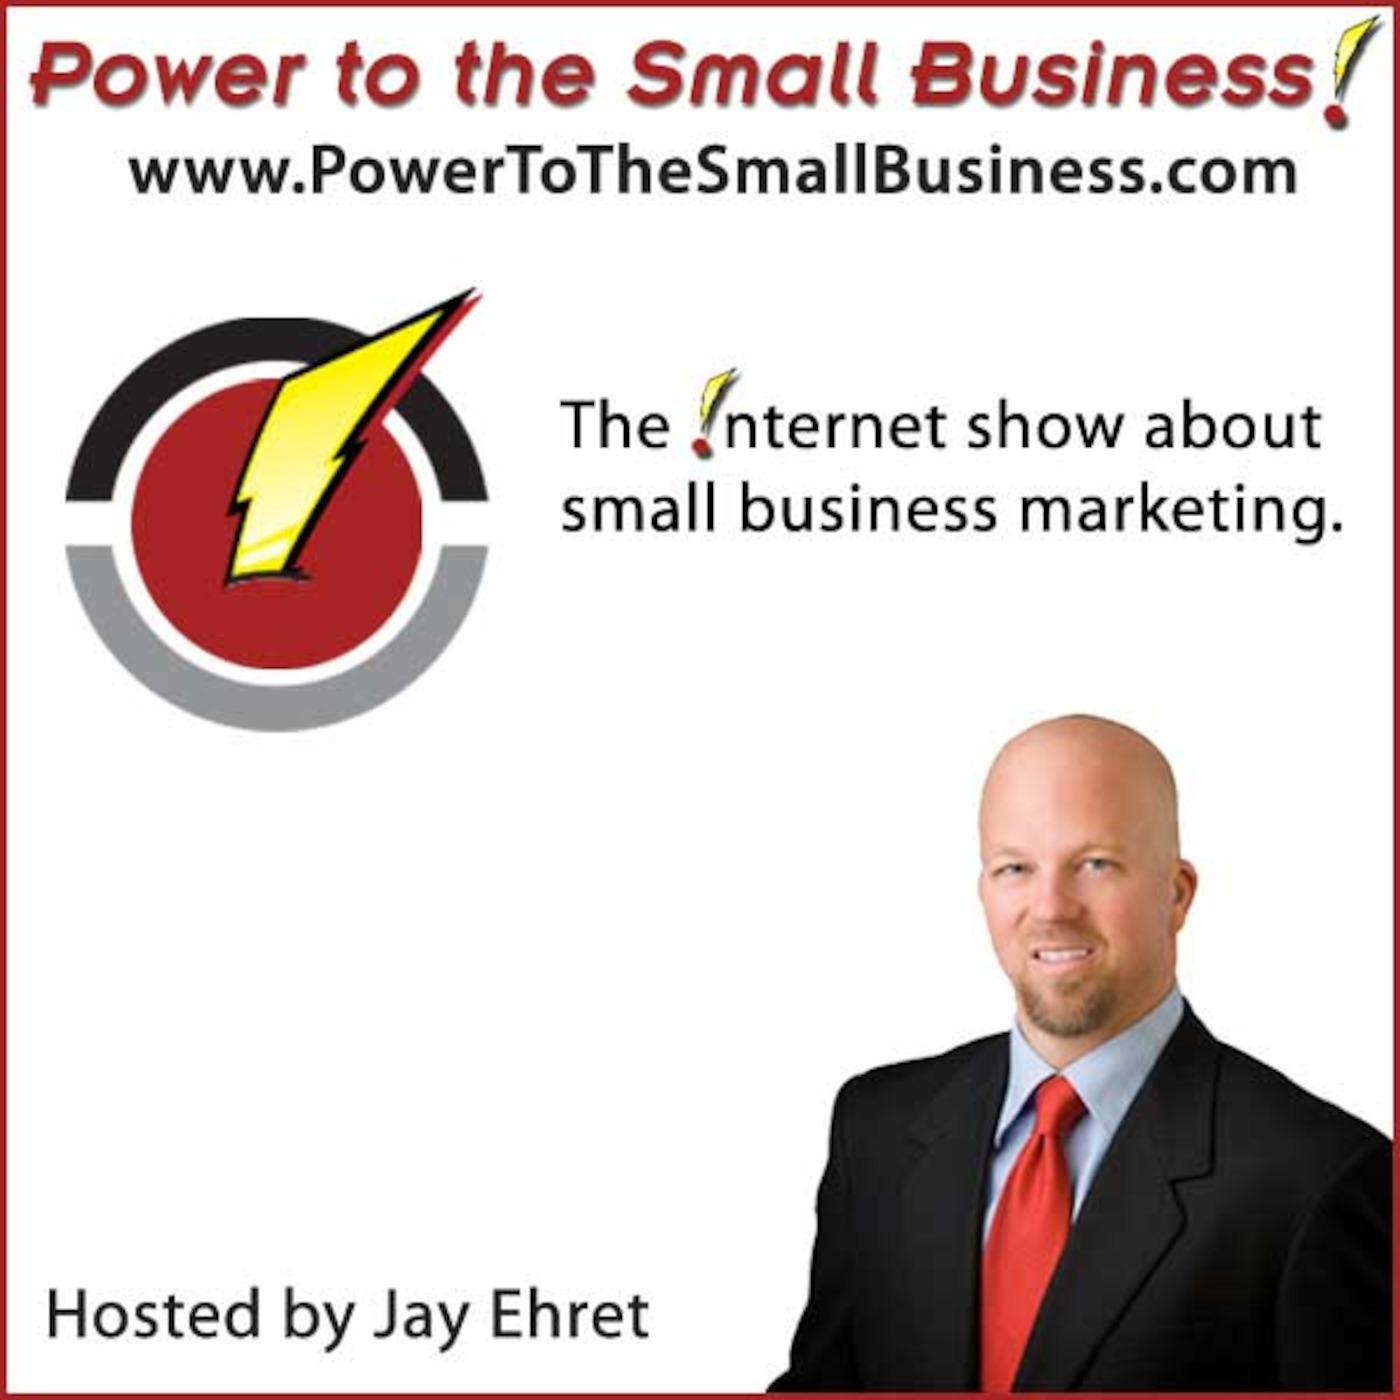 Power to the Small Business | Branding / Marketing Plans & Ideas / Social Media / Customer Experience Design / Digital Marketing